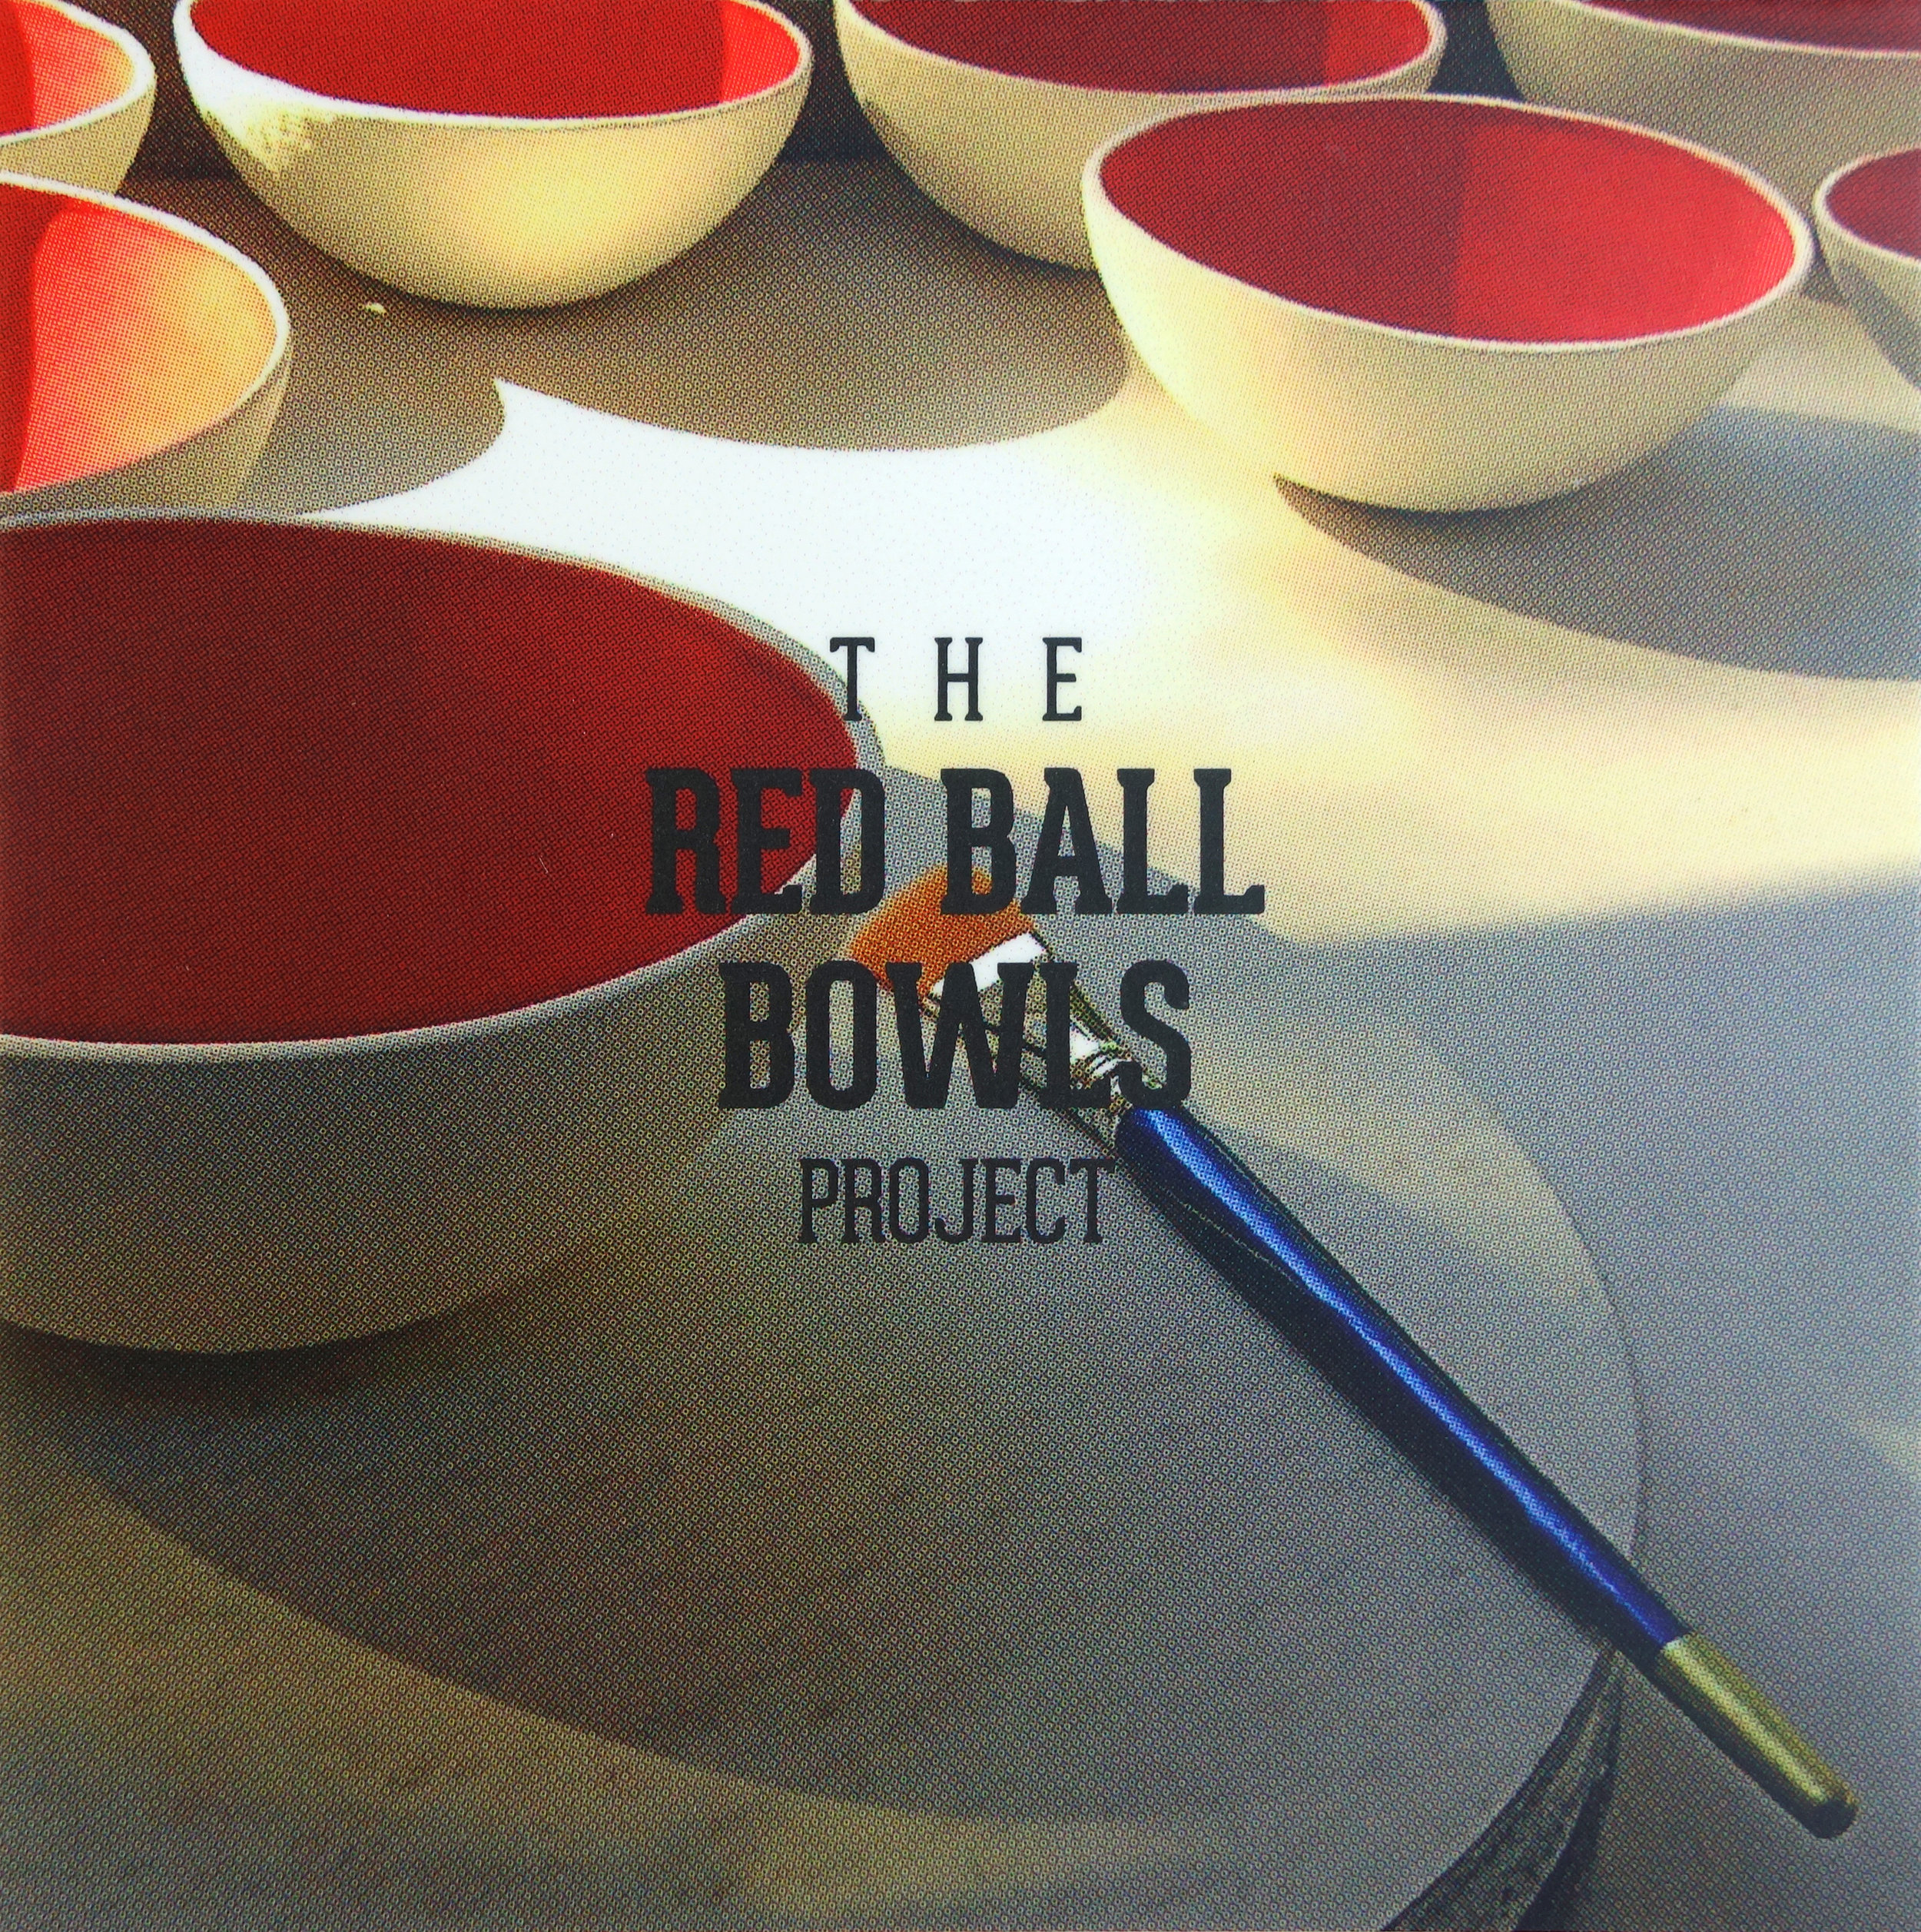 The Red Ball Bowls Project